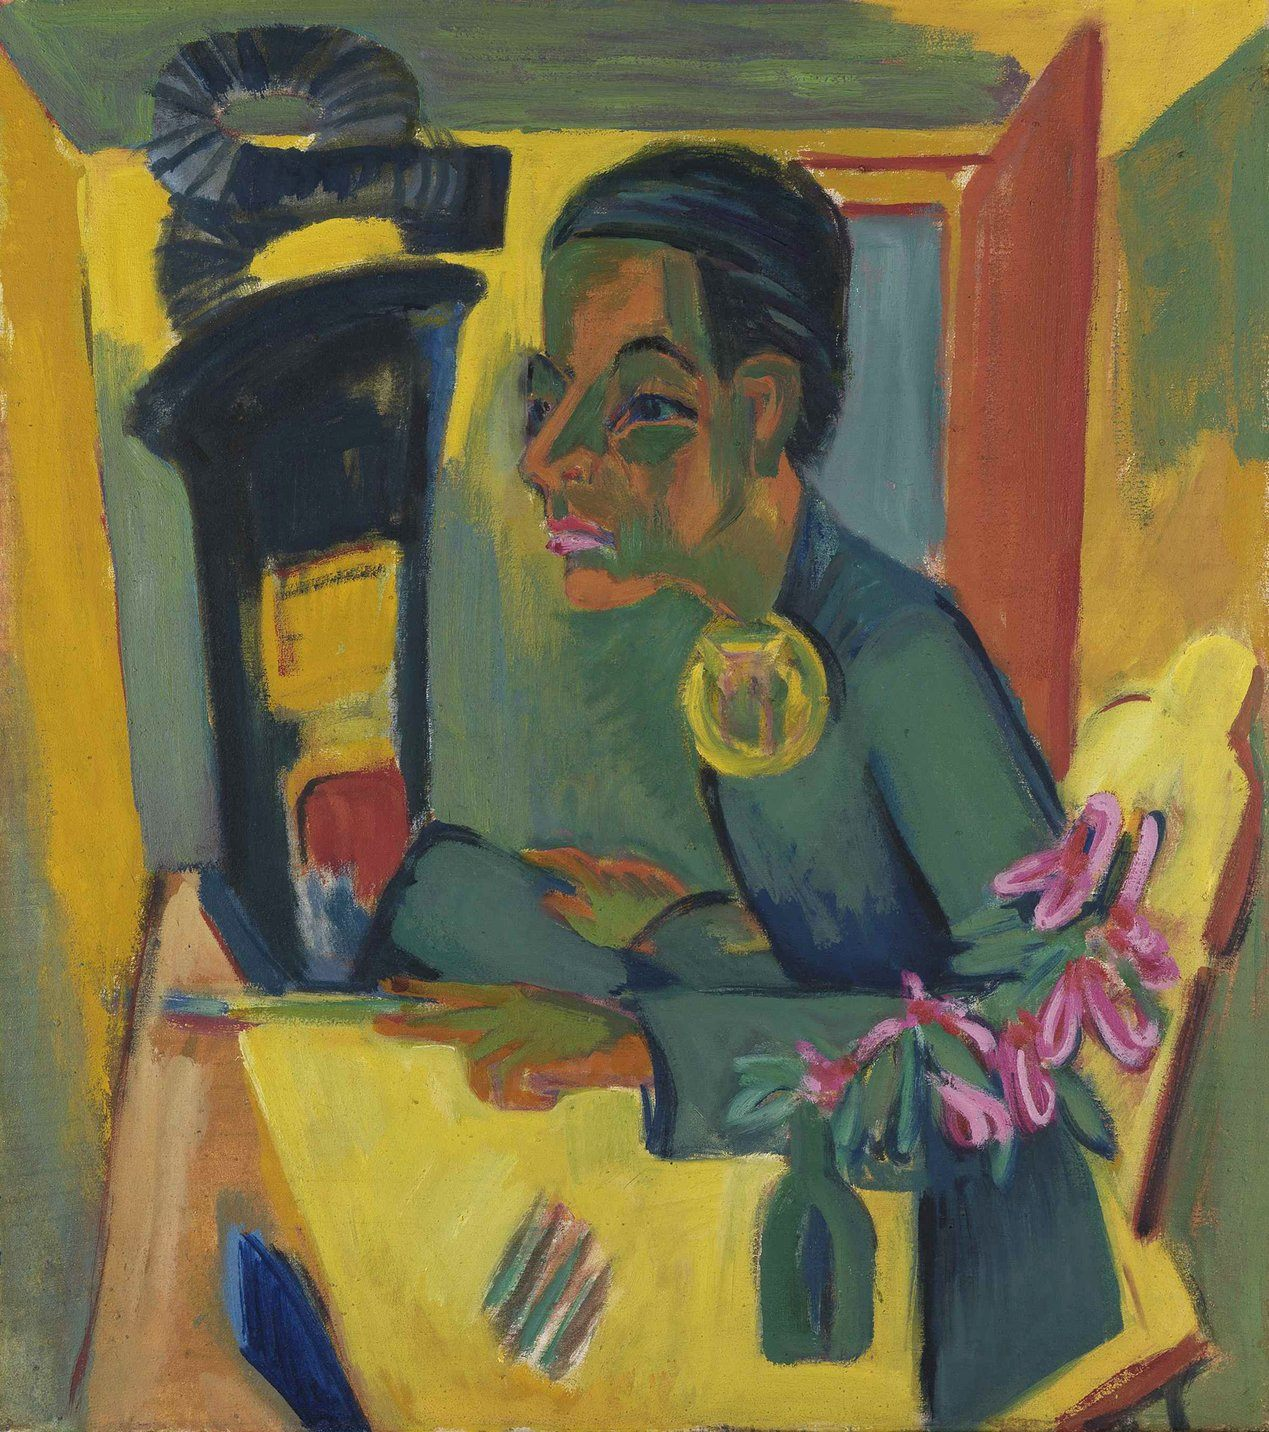 Ernst Ludwig Kirchner, le peintre (Autoportrait), 1920 Huile sur toile Staatliche Kunsthalle Karlsruhe © bpk / Staatliche Kunsthalle Karlsruhe